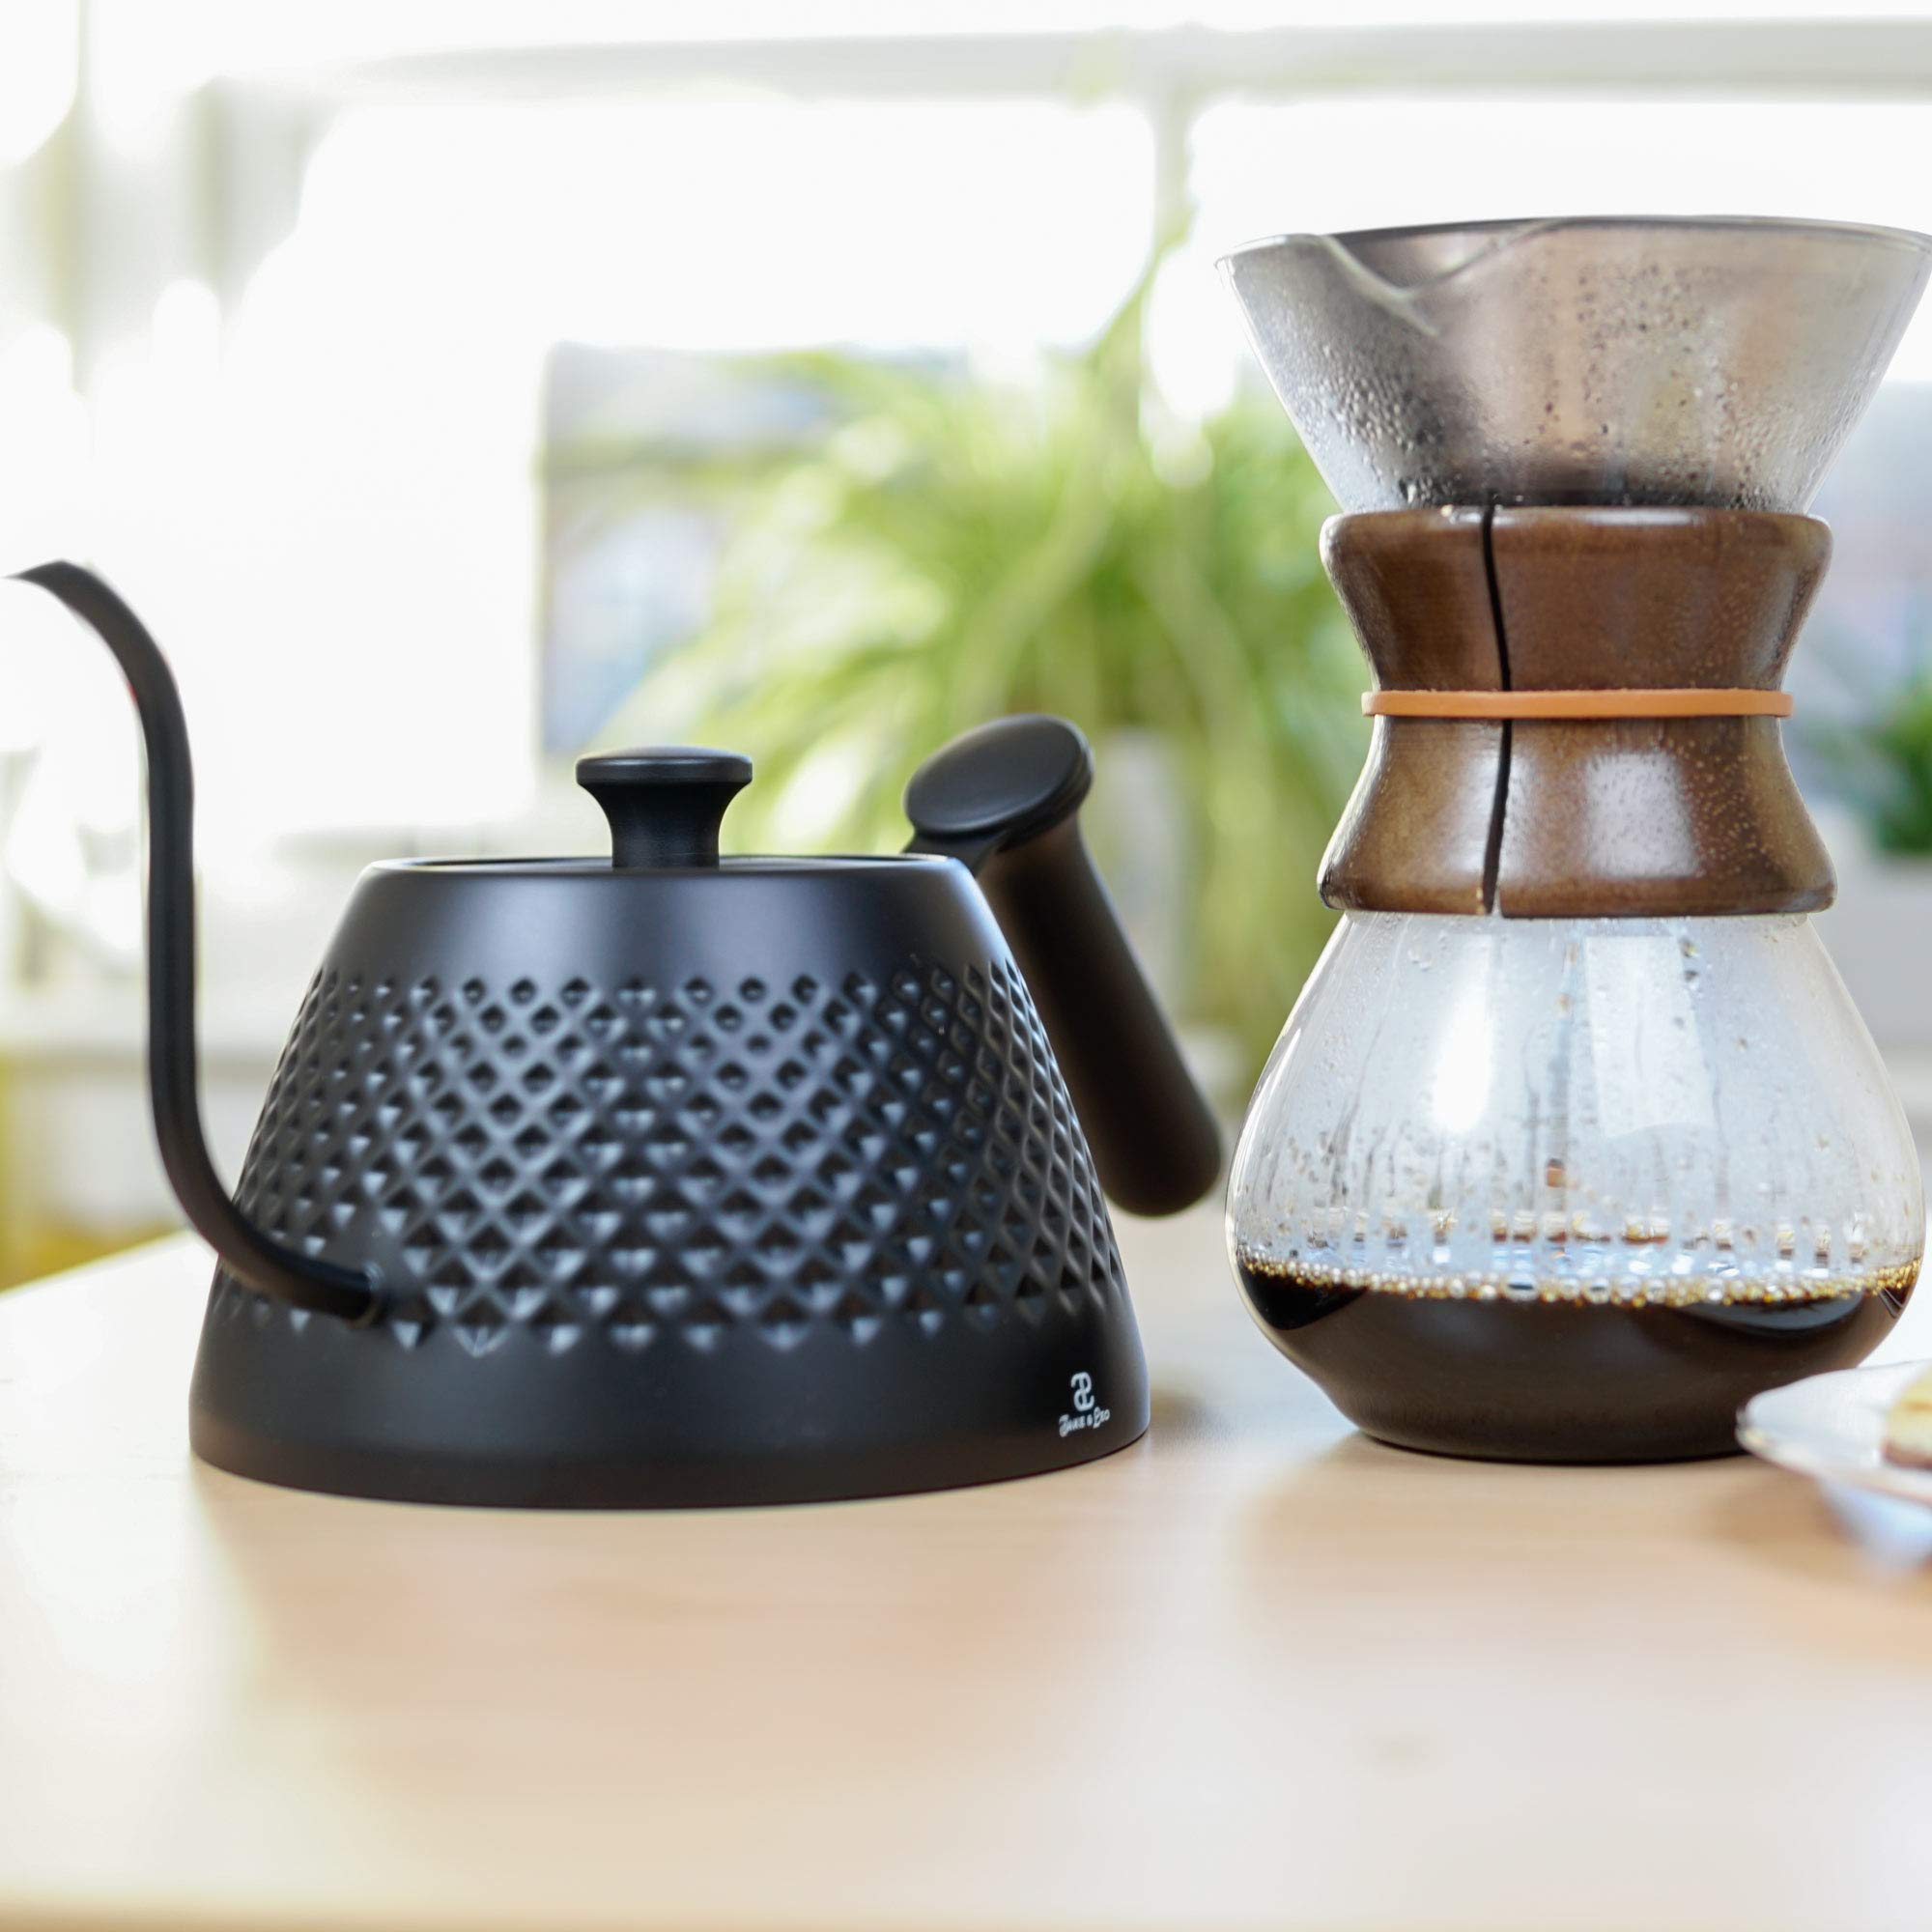 Jake & Leo Pour Over Kettle - Premium Stylish Dimpled Design, Stainless Steel - Gooseneck Specialty Kettle for Kitchen Stovetop - 34oz, Matte Black, Long Spout for Boiling, Pouring; Brew Coffee & Tea by Jake & Leo (Image #7)